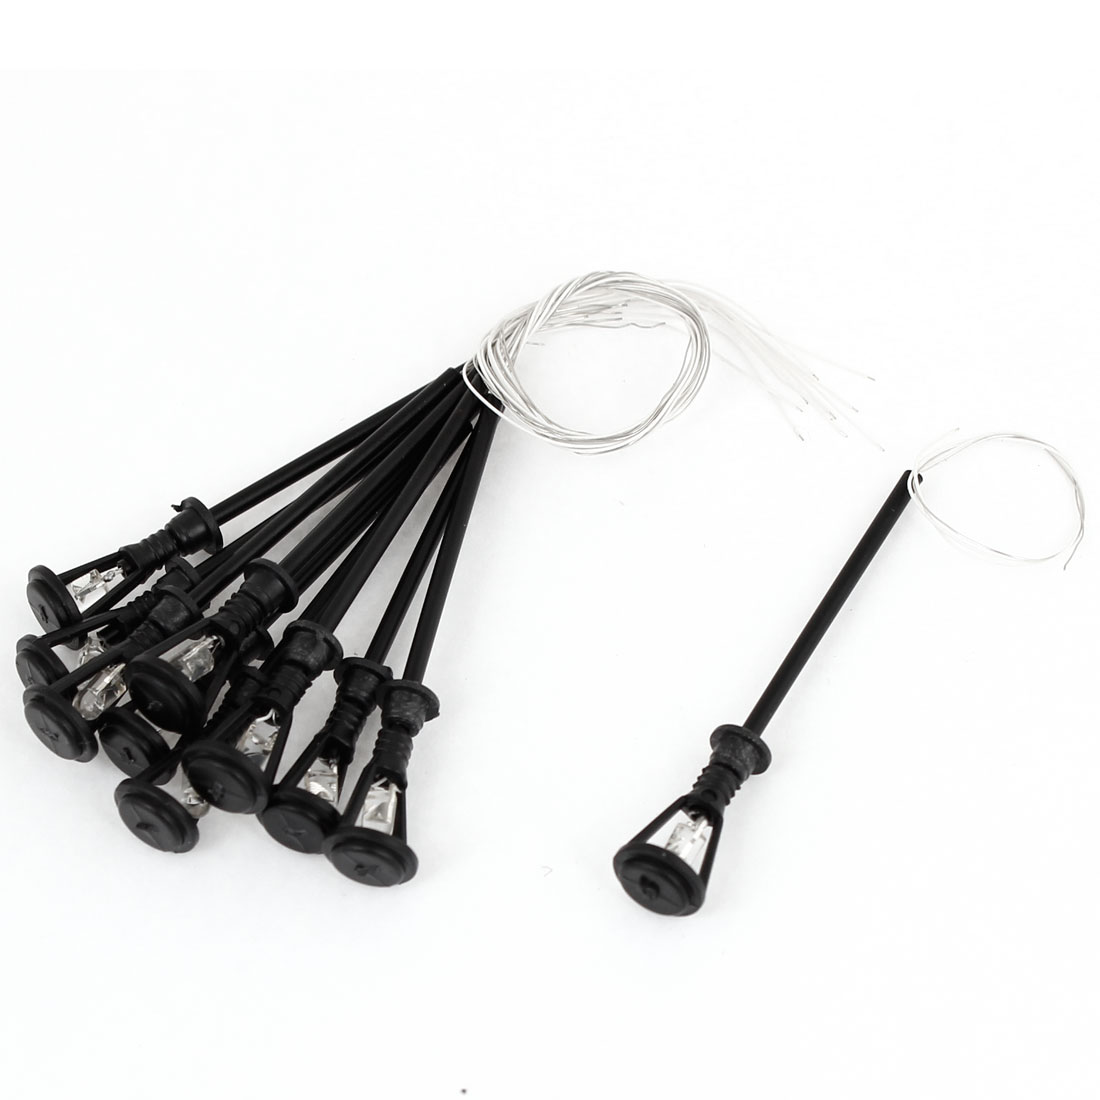 10pcs Black Plastic 1:100 Model Lamppost White LED Street Light 2.12""